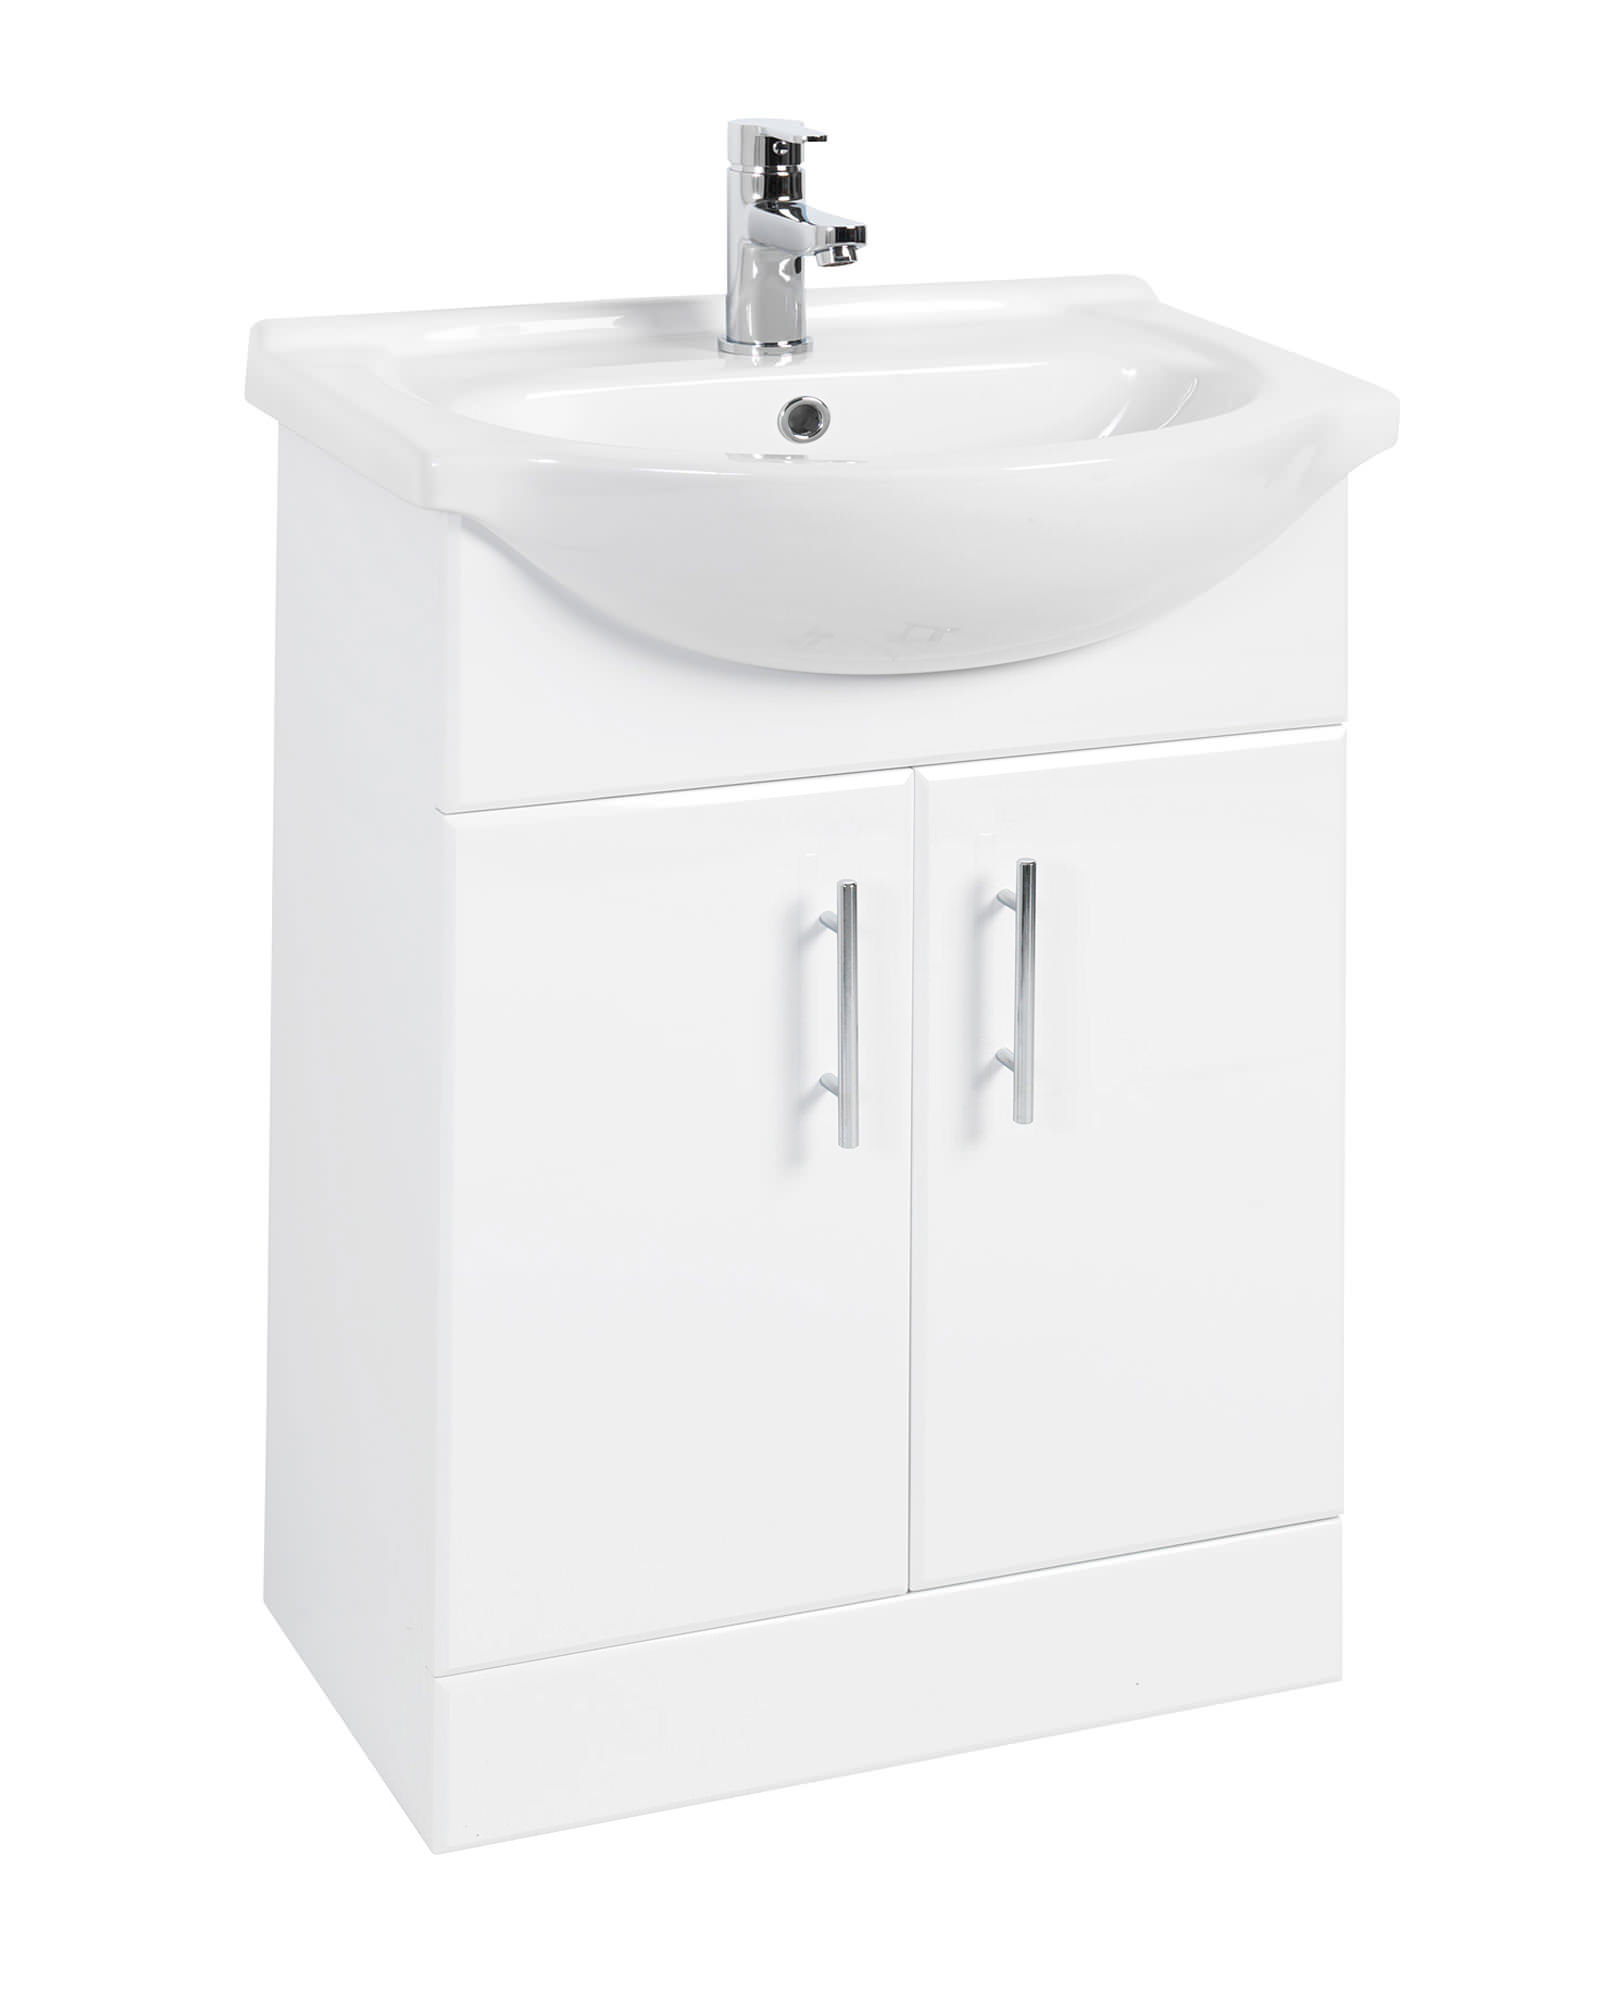 Floor Standing Bathroom Vanity Units With Without Basins